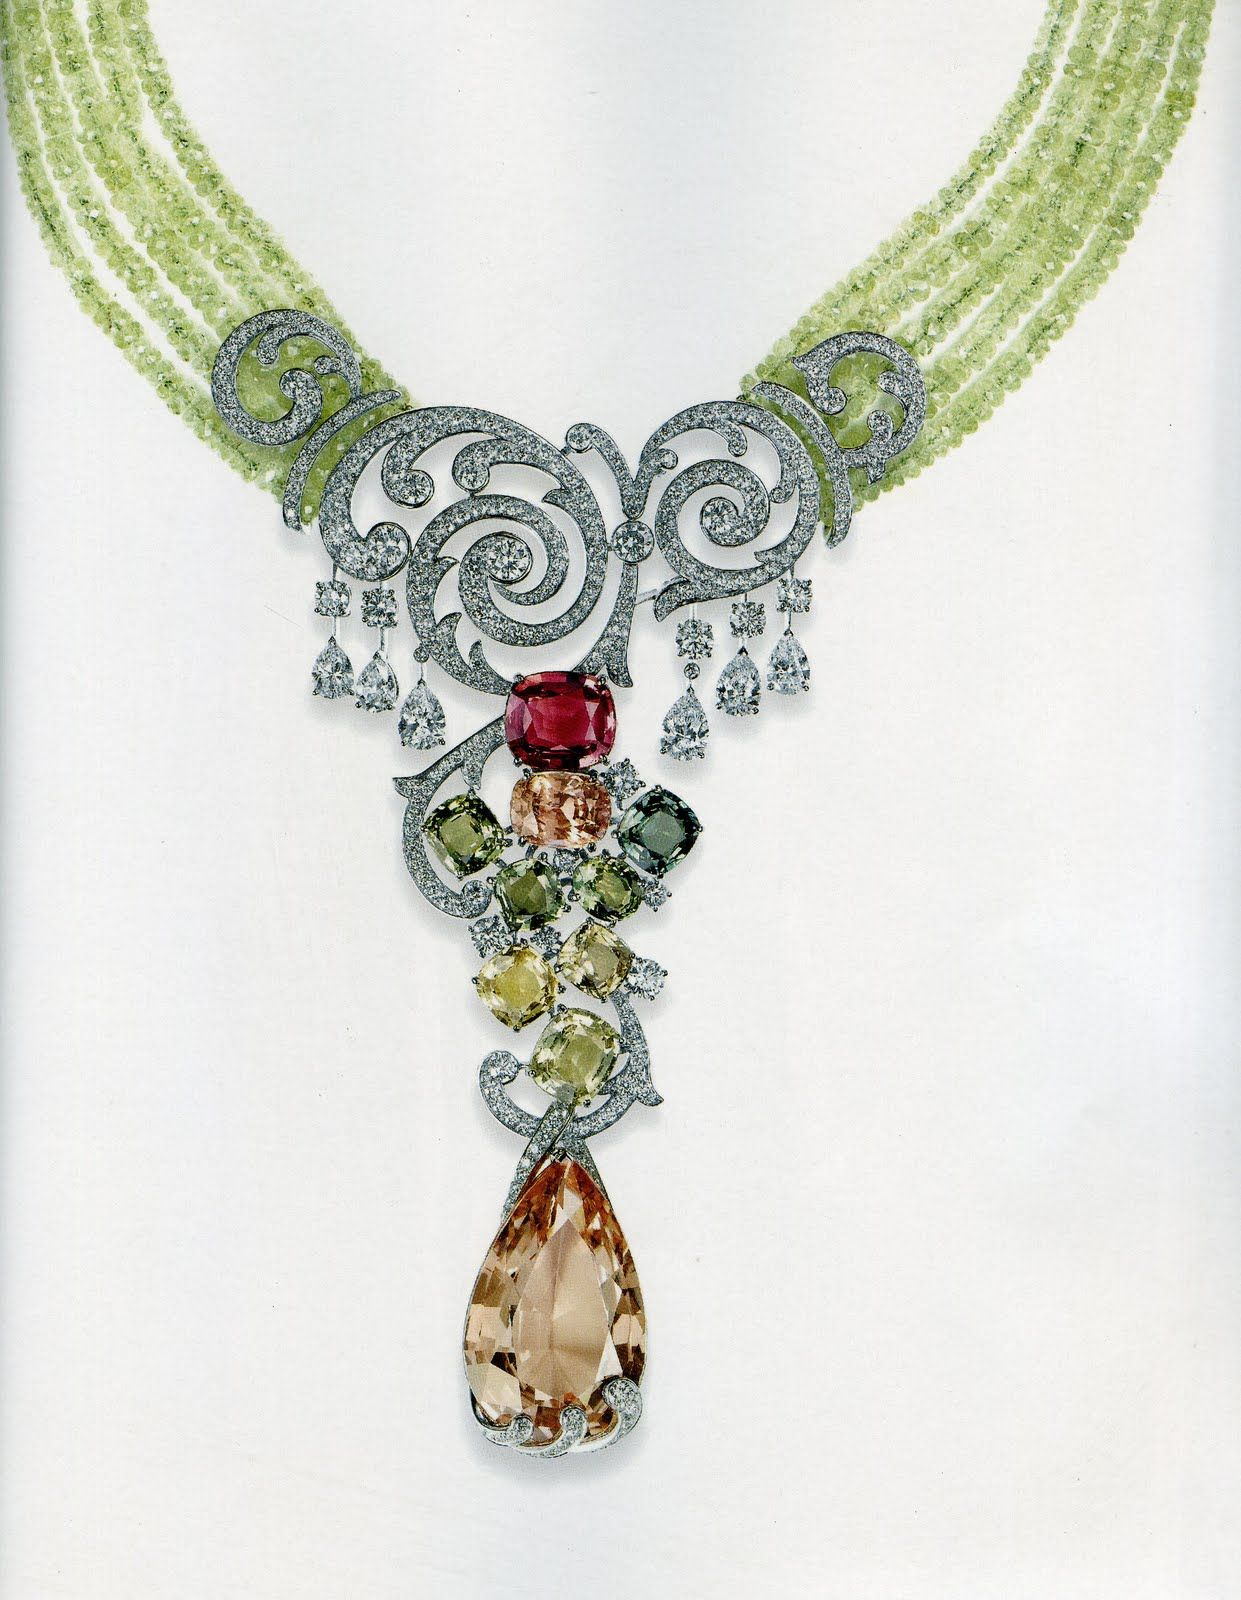 Cartier necklace of morganite pink sister of emerald green